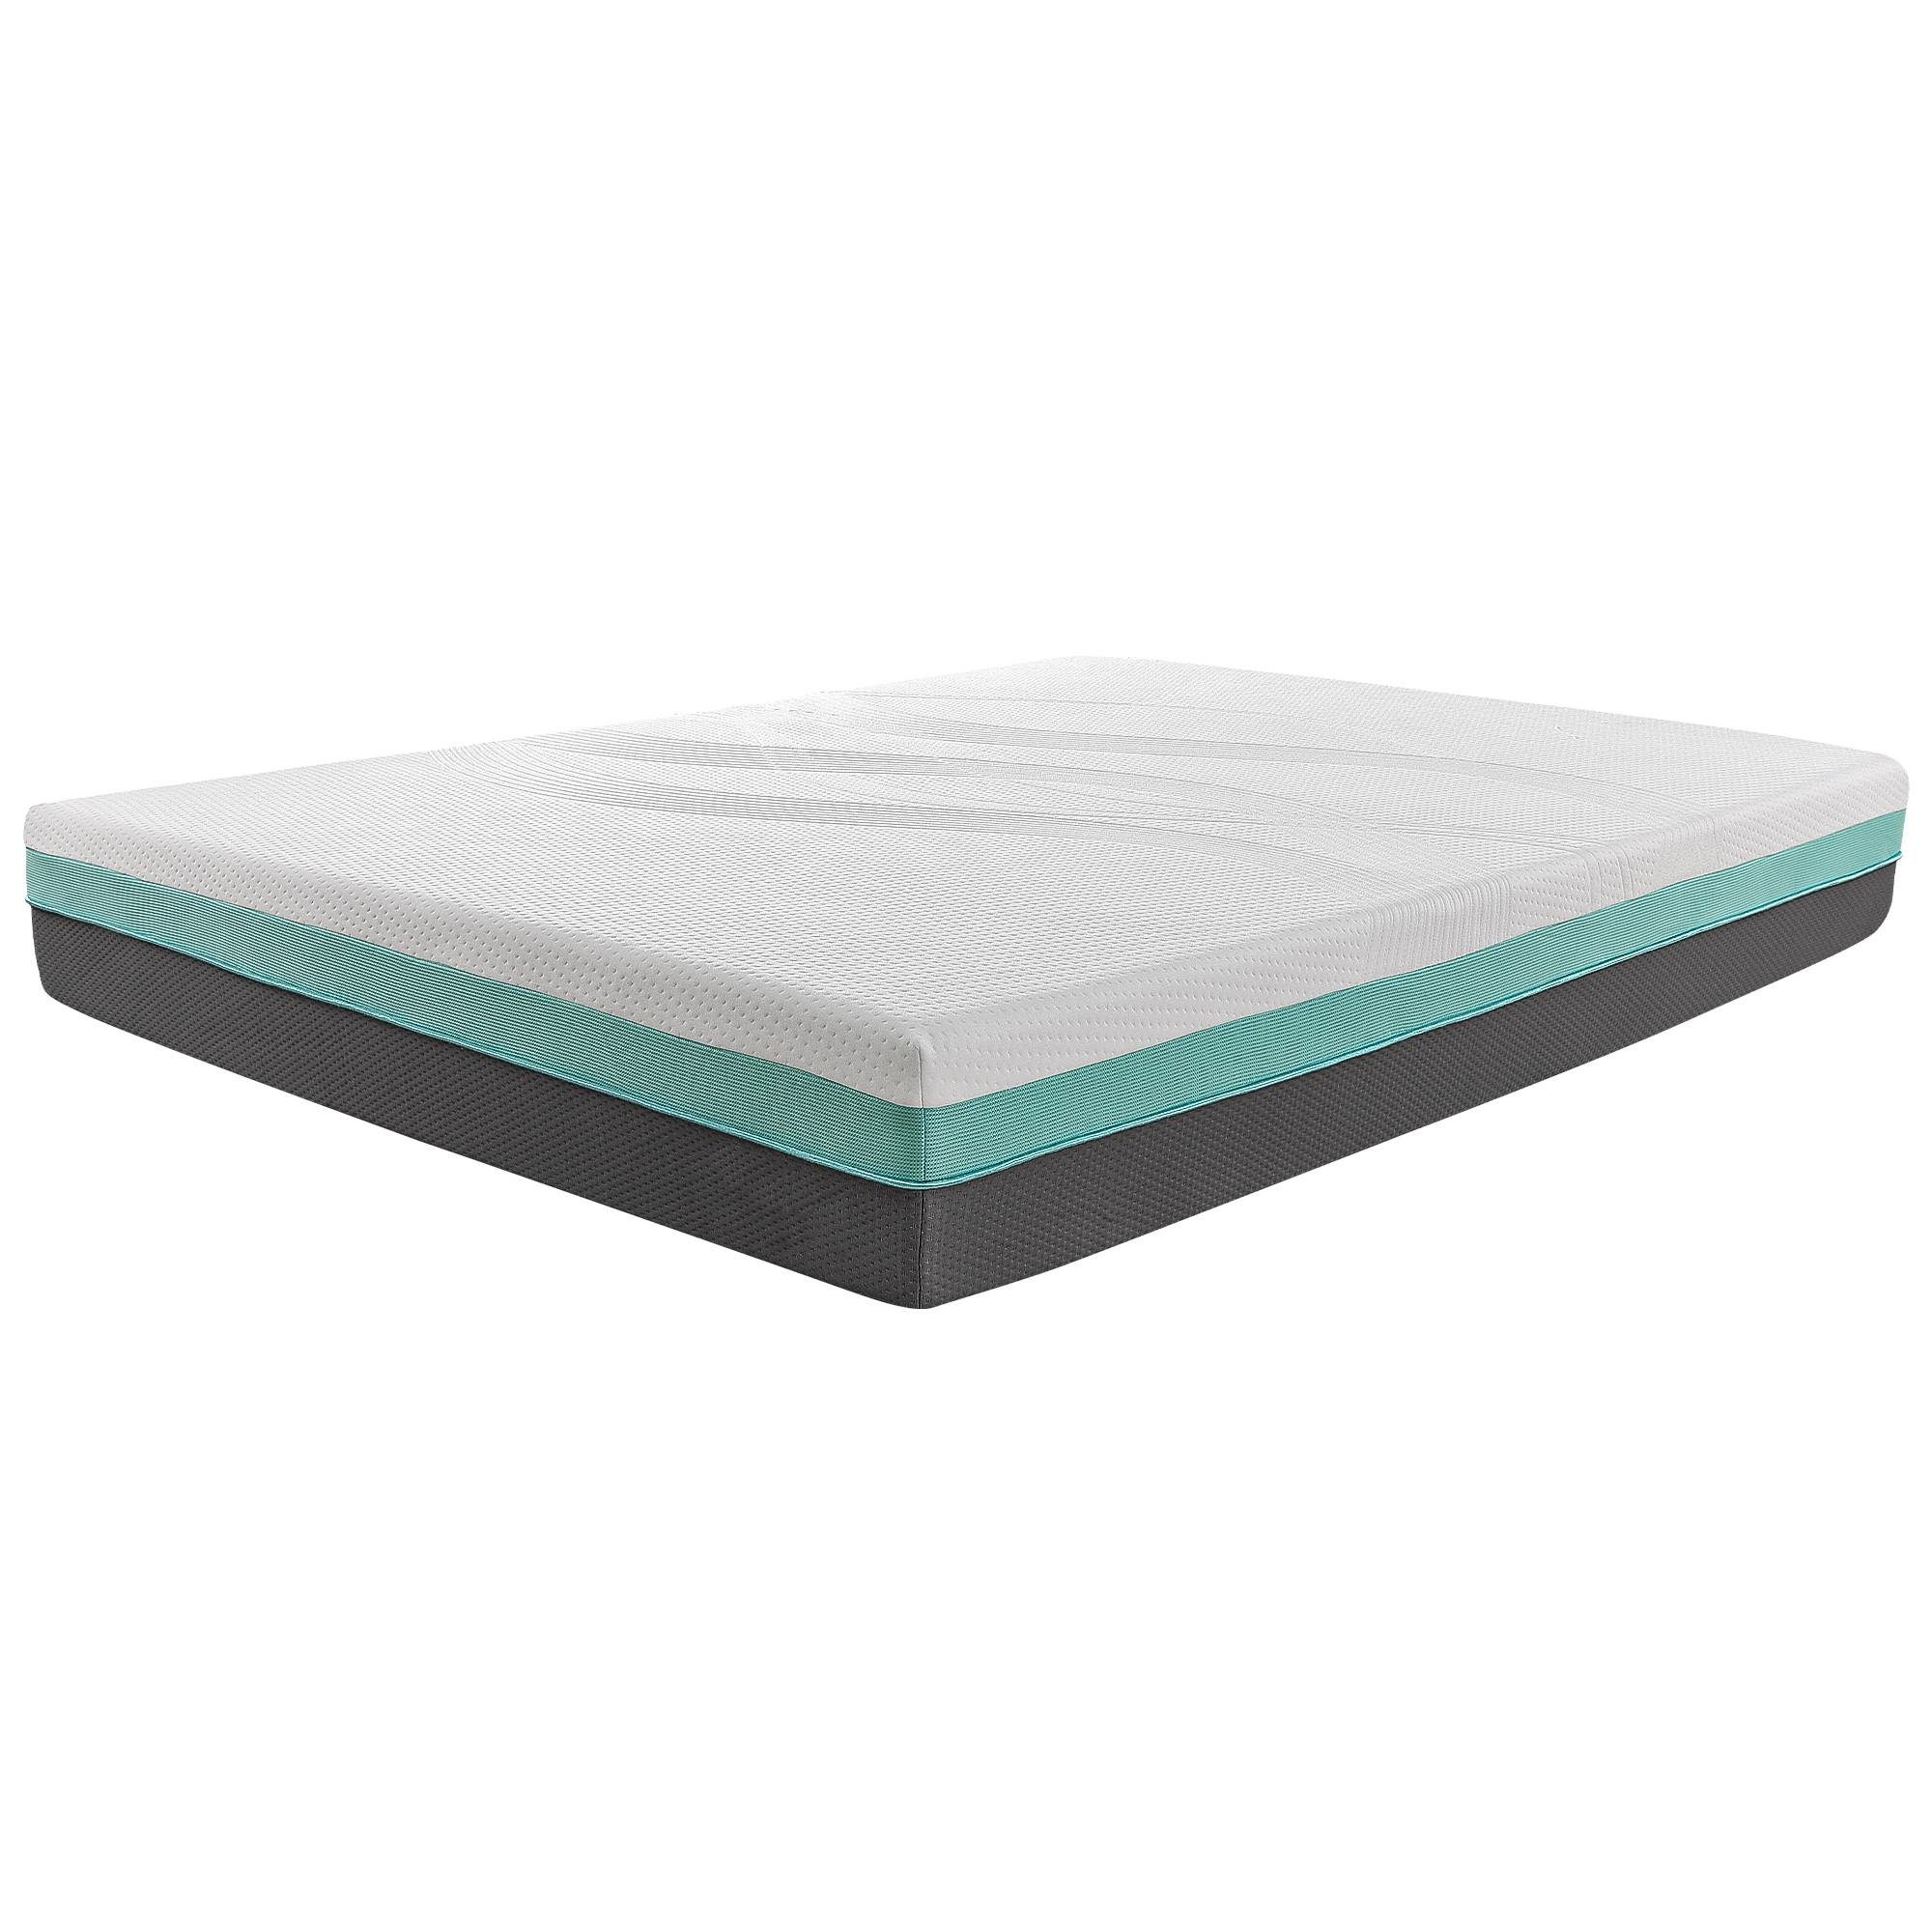 The Wave Edge Support Design Hybrid Mattress 10""